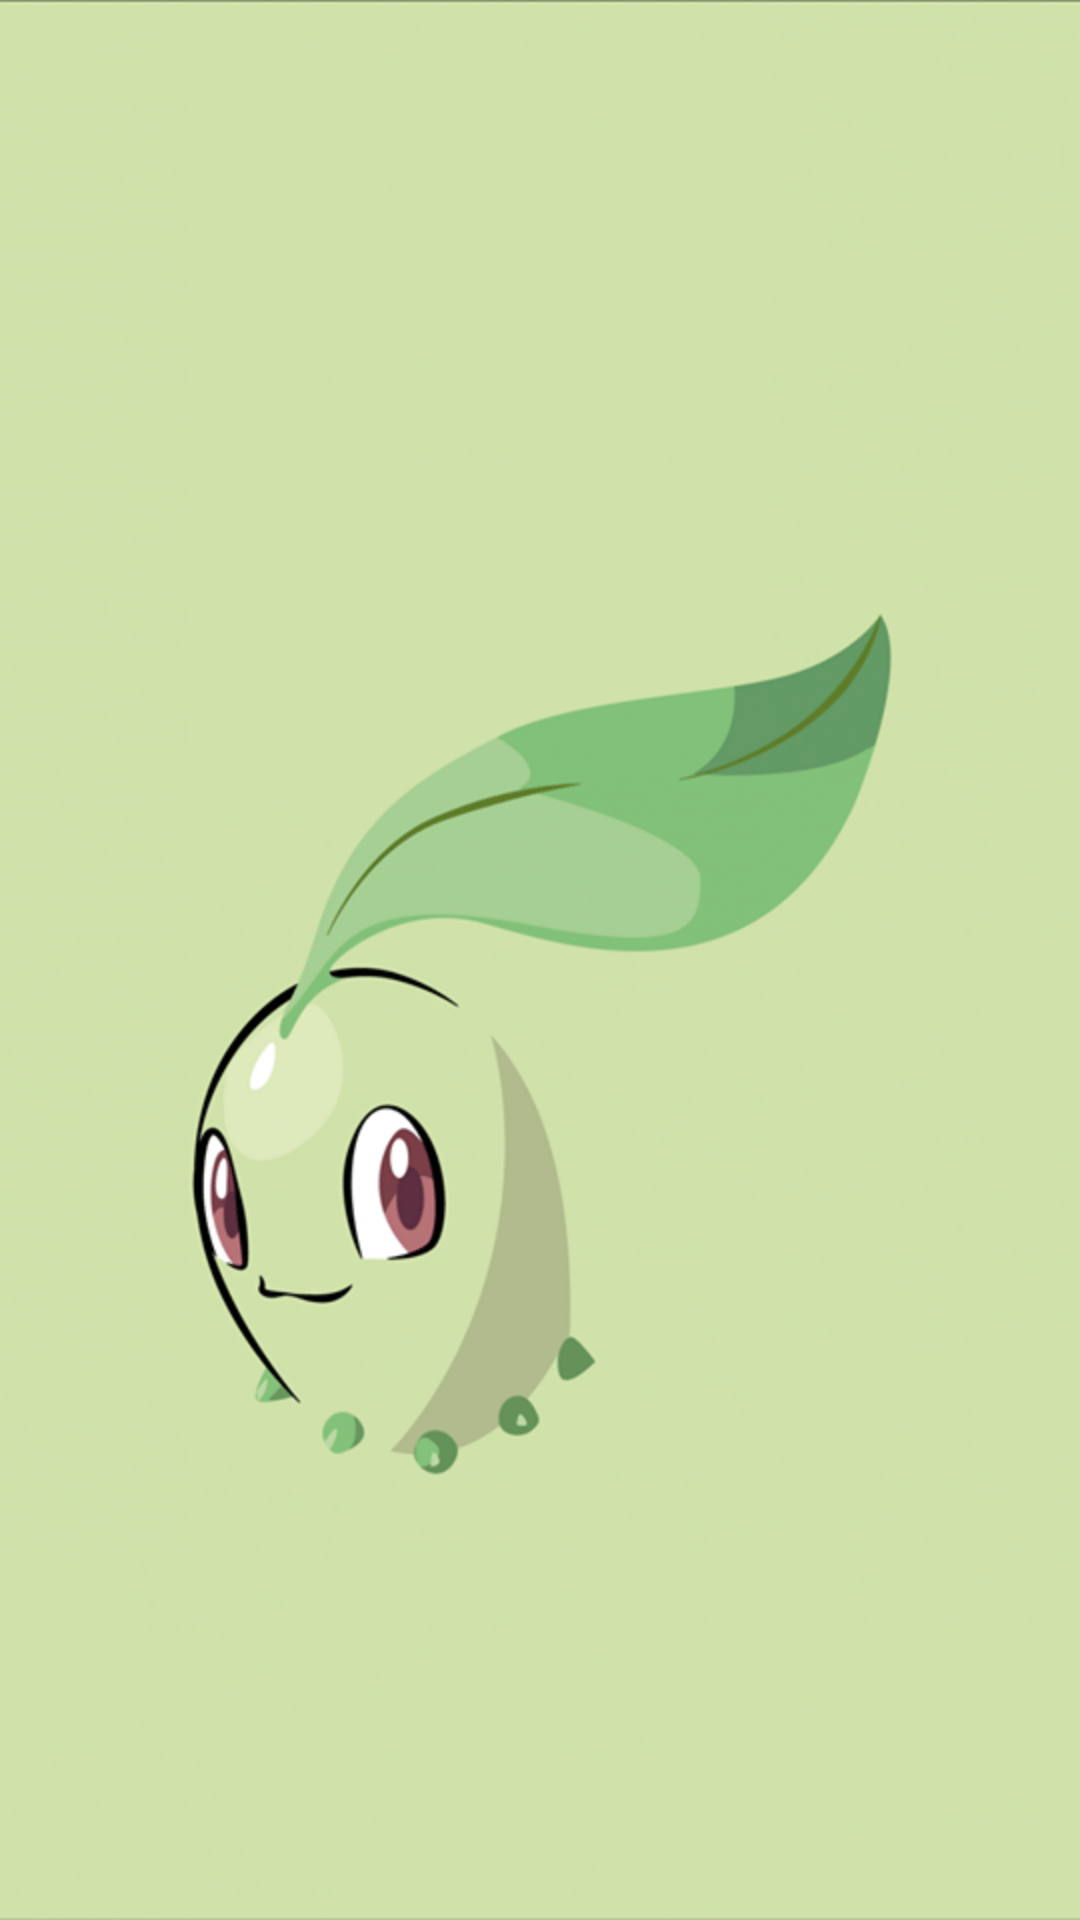 Download Chikorita 1080 x 1920 Wallpapers - 4676588 - POKEMON ...